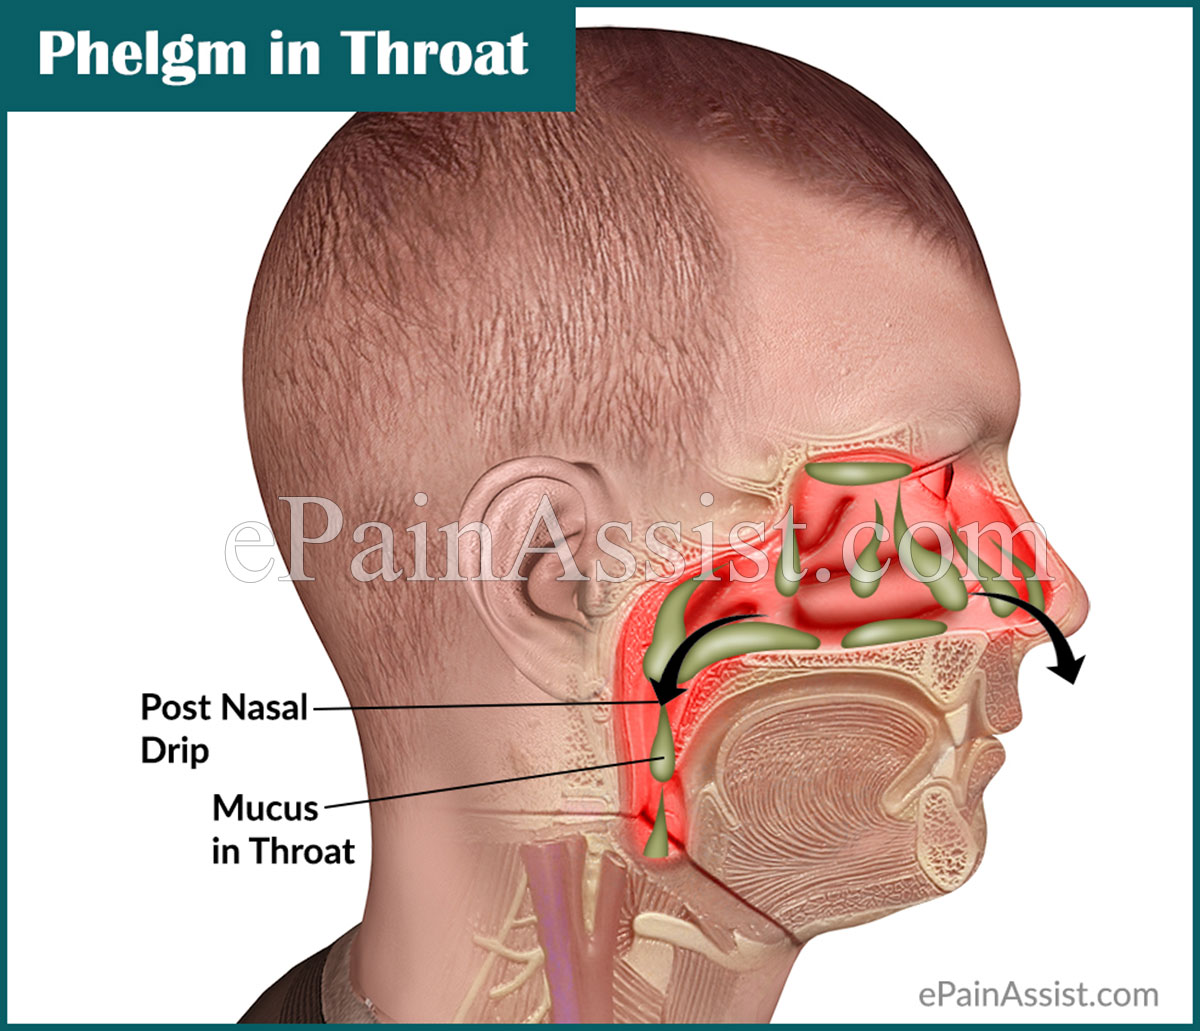 hight resolution of associated symptoms of phelgm in throat or mucus in throat